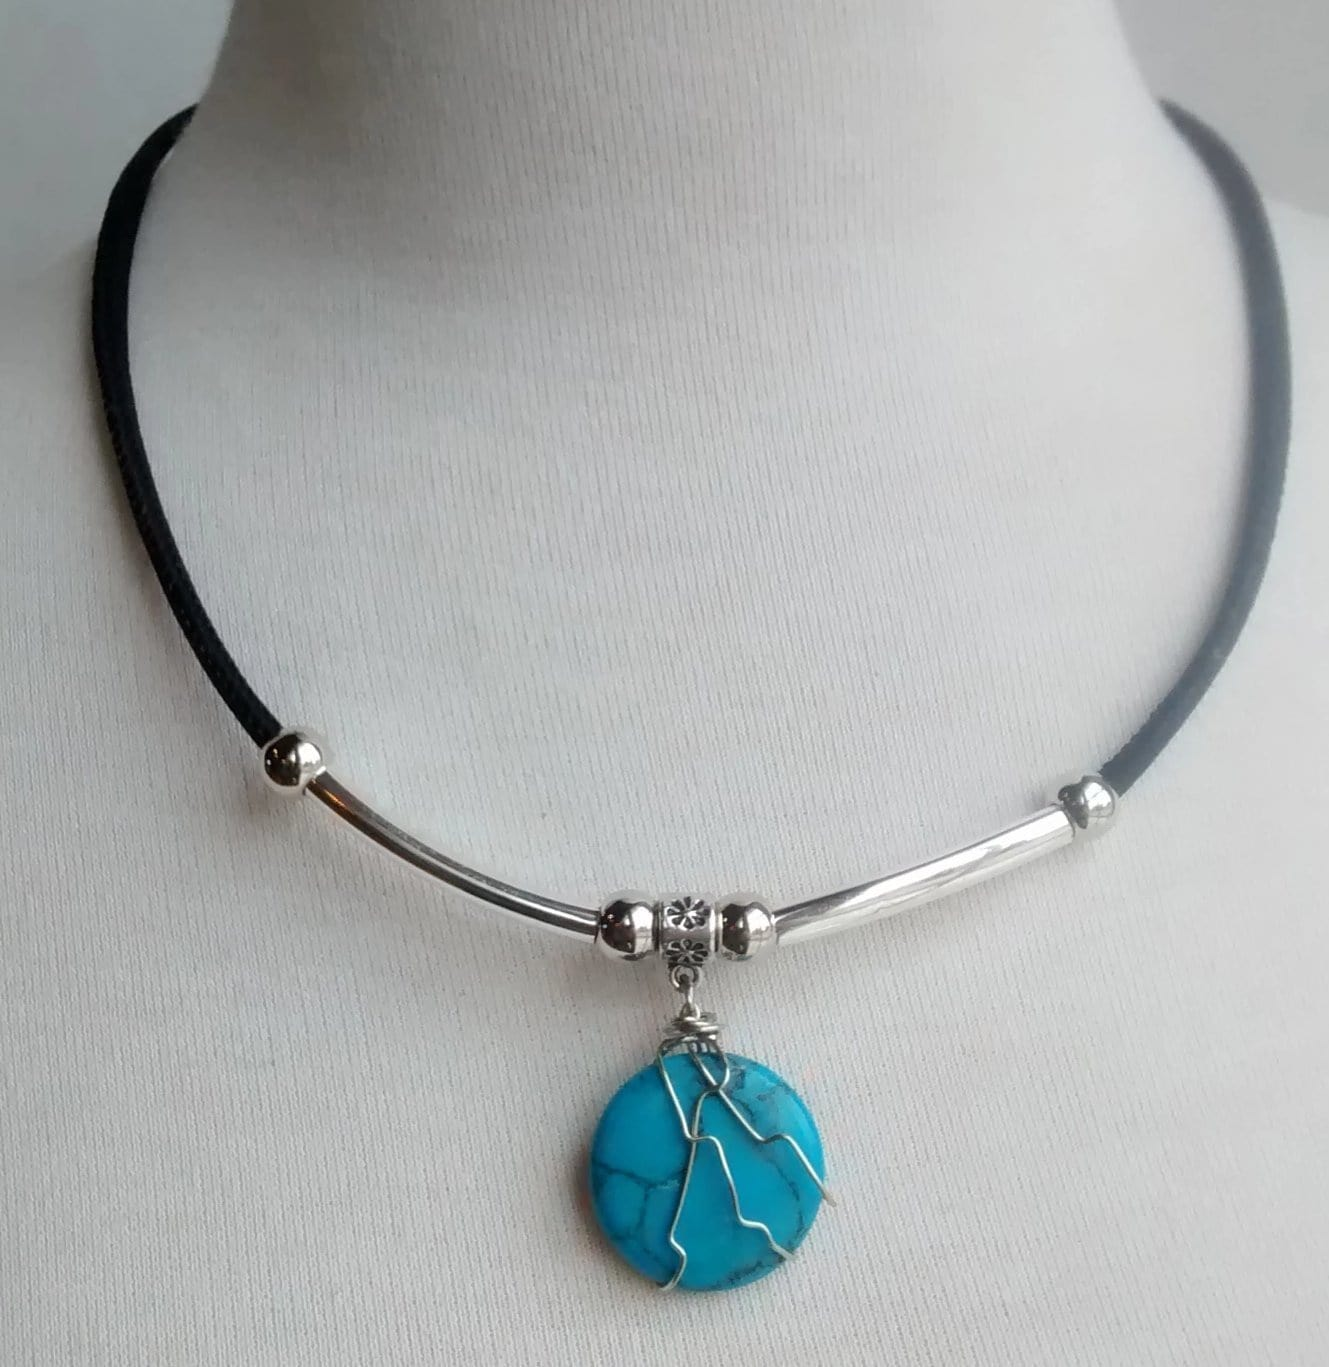 Cork Choker Black with Turquoise Stone - Naturally Anti-Microbial Hypoallergenic Sustainable Eco-Friendly Cork